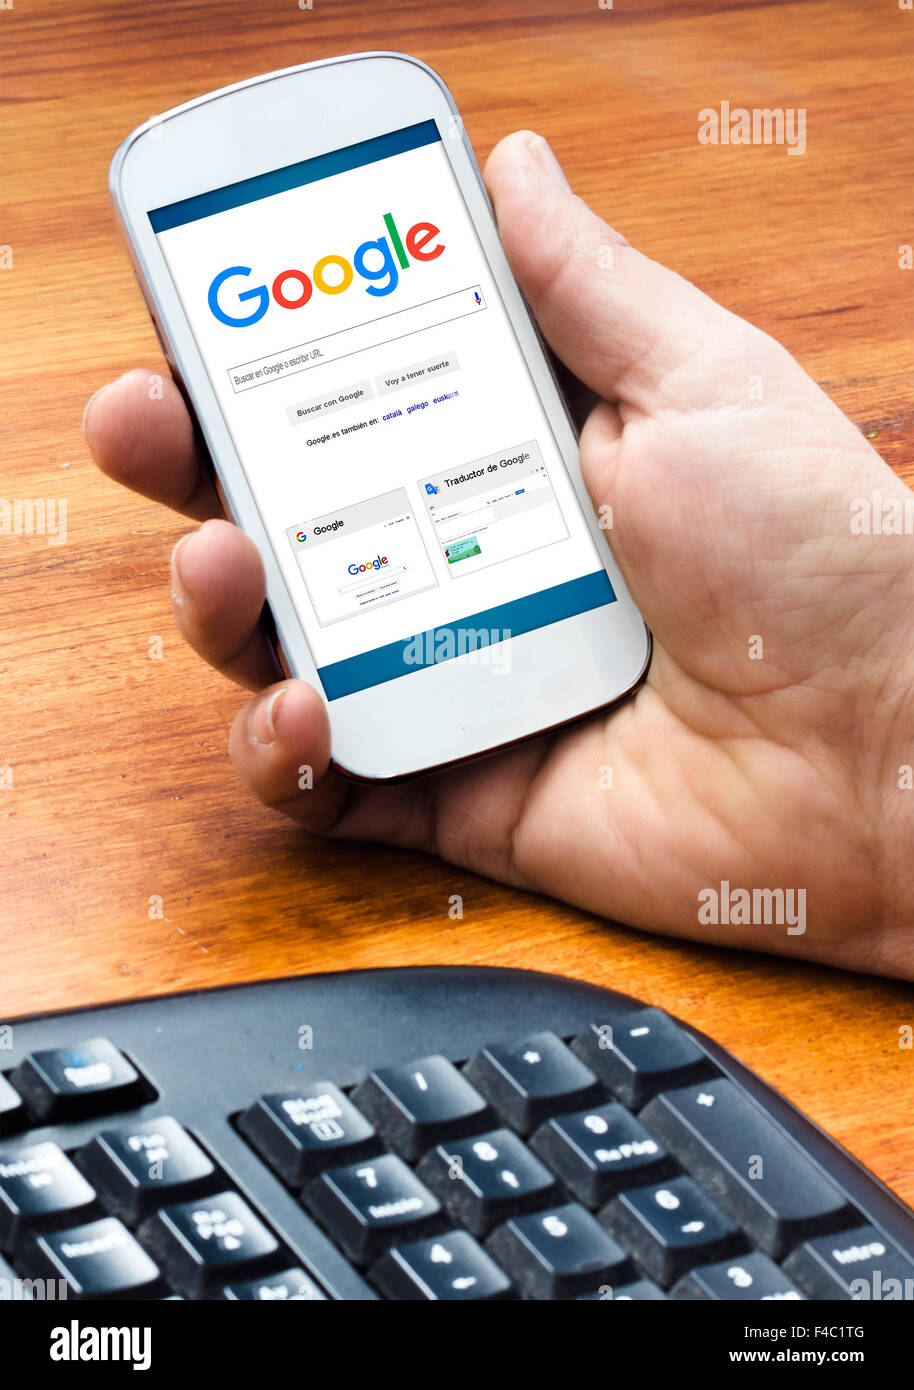 Barcelona, Spain- September 4, 2015: Male hand holding on smartphone with Google Web Search homepage on the screen - Stock Image